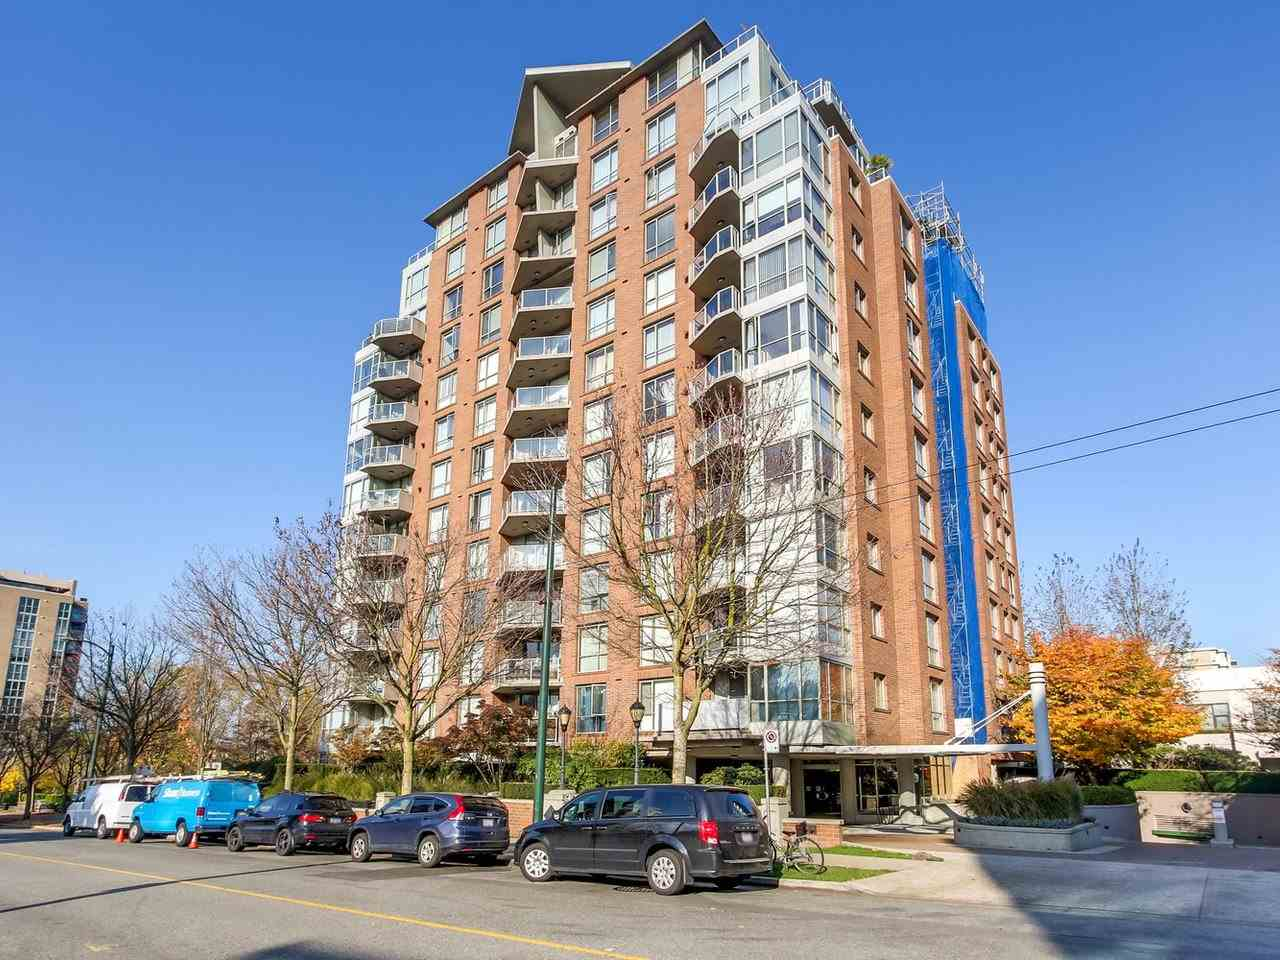 Main Photo: 102 1575 W 10TH AVENUE in Vancouver: Fairview VW Condo for sale (Vancouver West)  : MLS®# R2218519